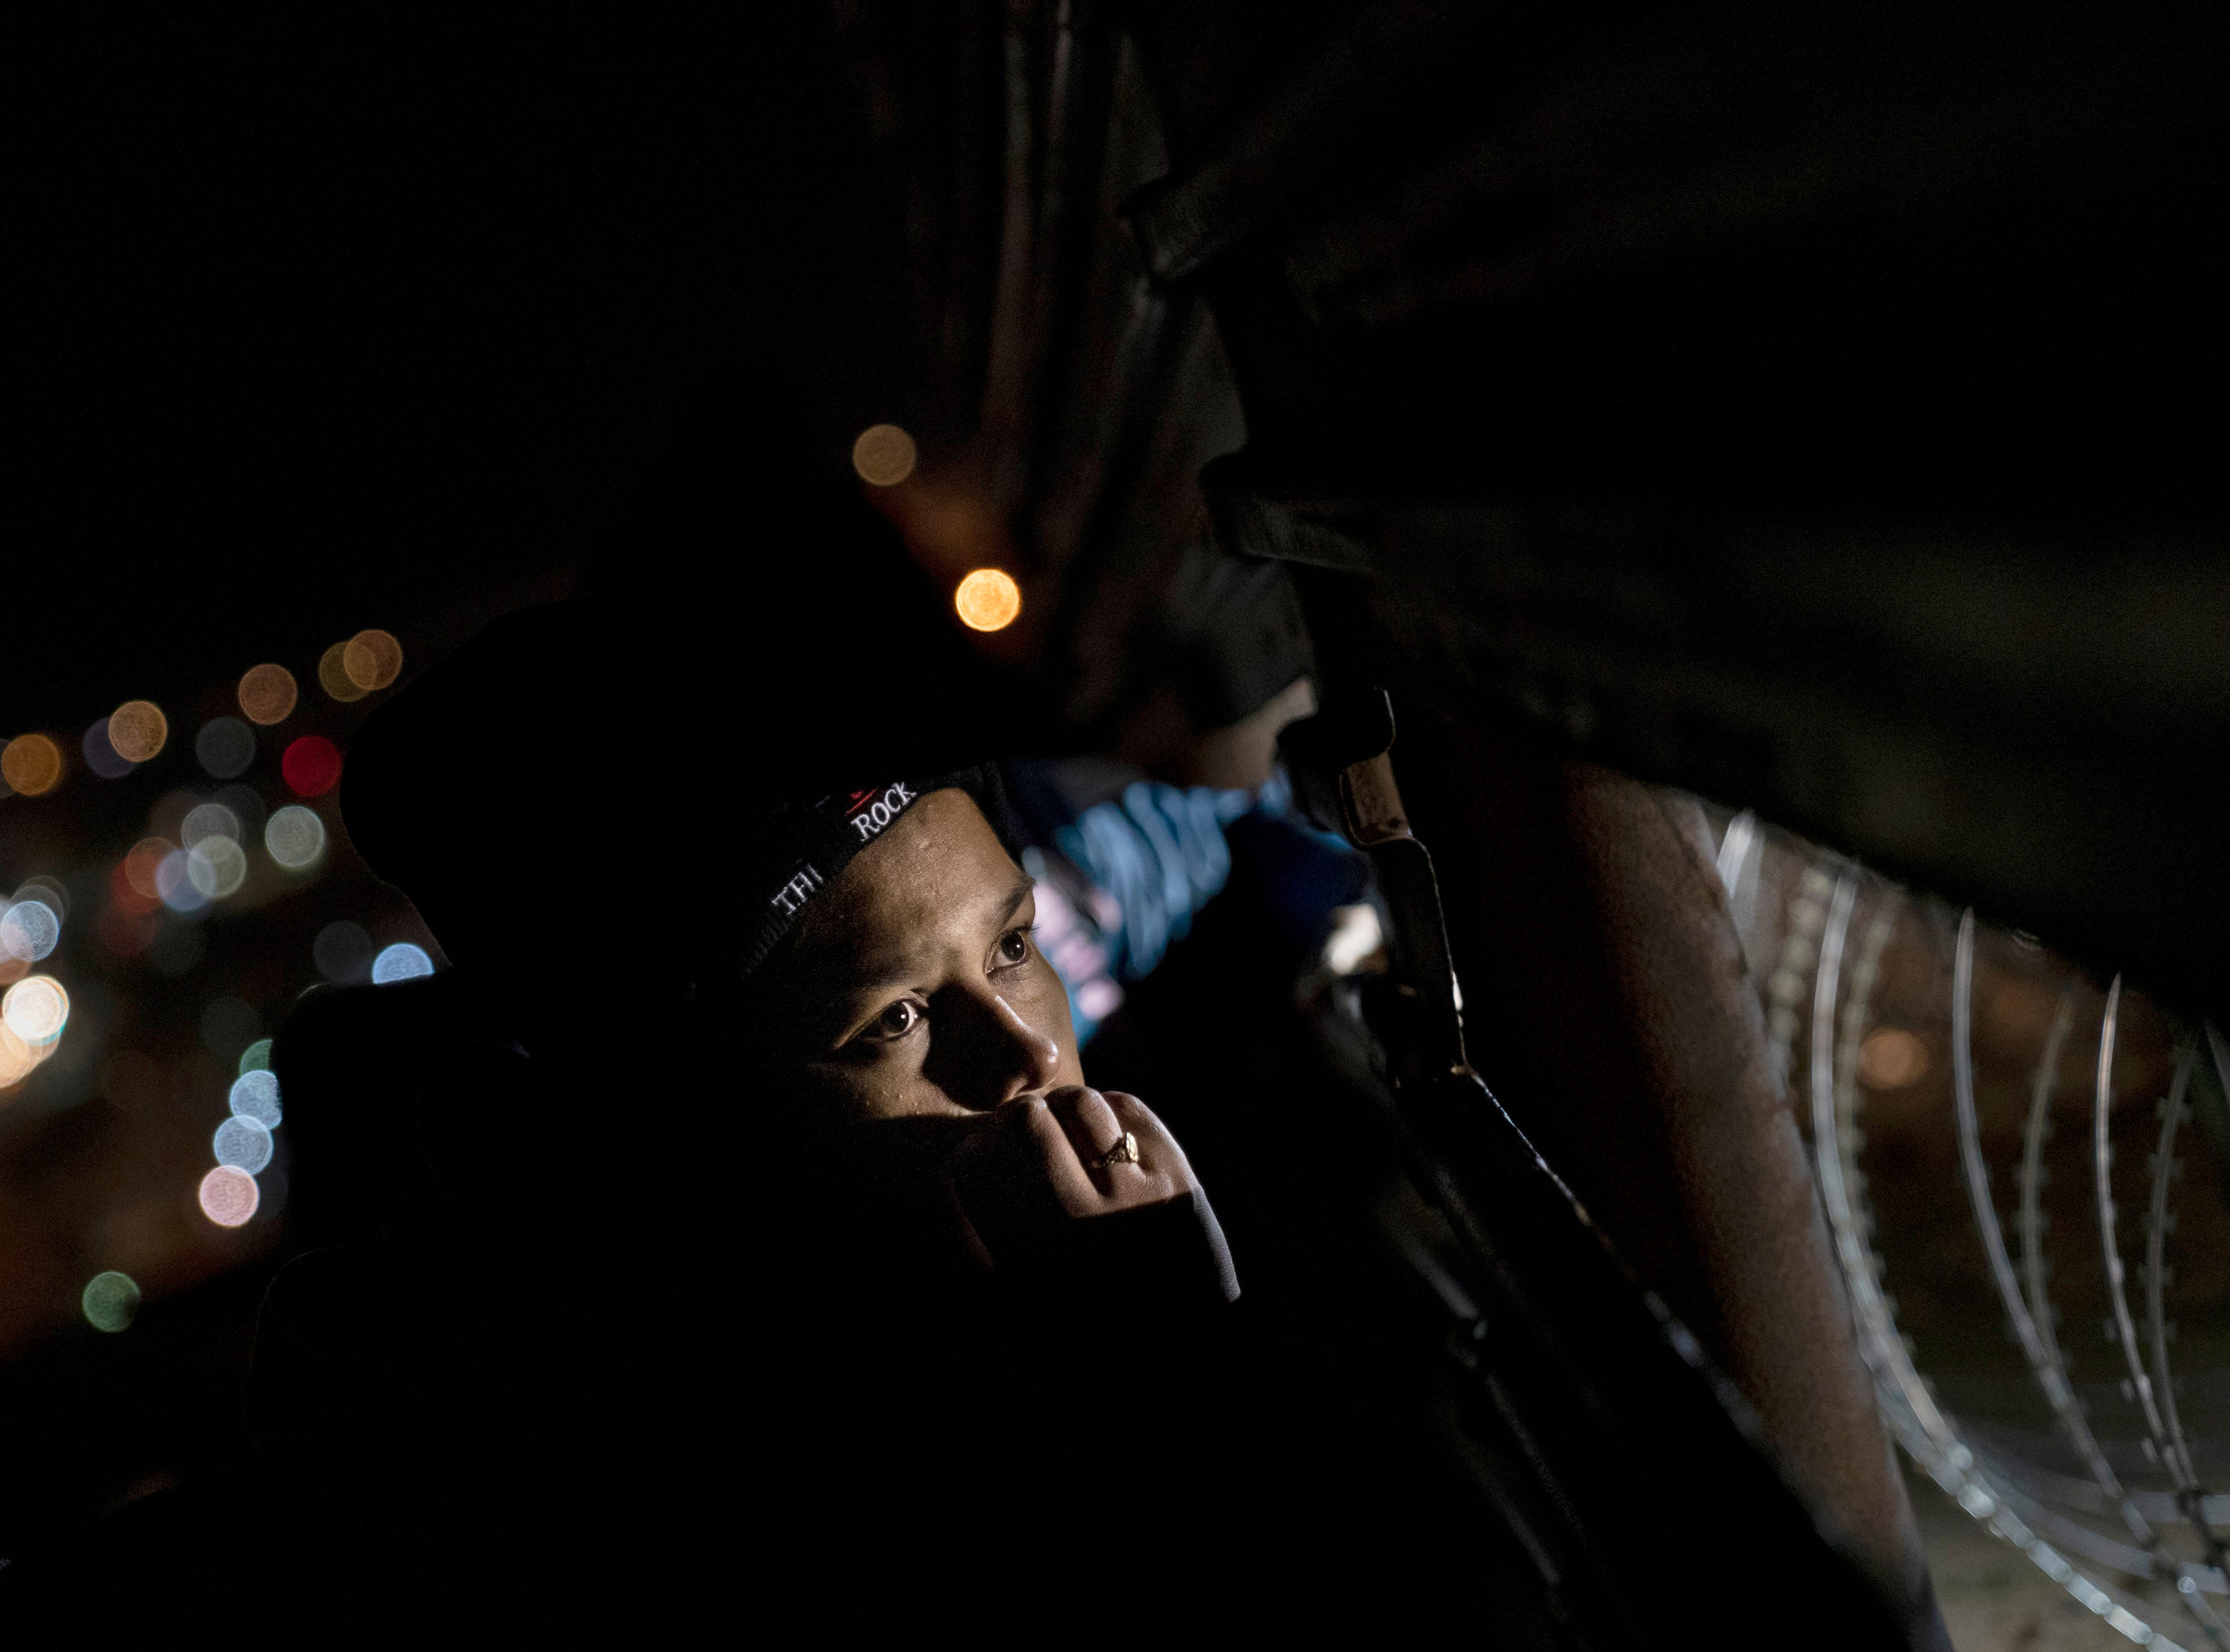 Migrants look trough a hole on the fence as they are looking for a place to jump the border fence to get into the U.S. side to San Diego, Calif., from Tijuana, Mexico, Saturday, Dec. 29, 2018. Discouraged by the long wait to apply for asylum through official ports of entry, many migrants from recent caravans are choosing to cross the U.S. border wall and hand themselves in to border patrol agents.